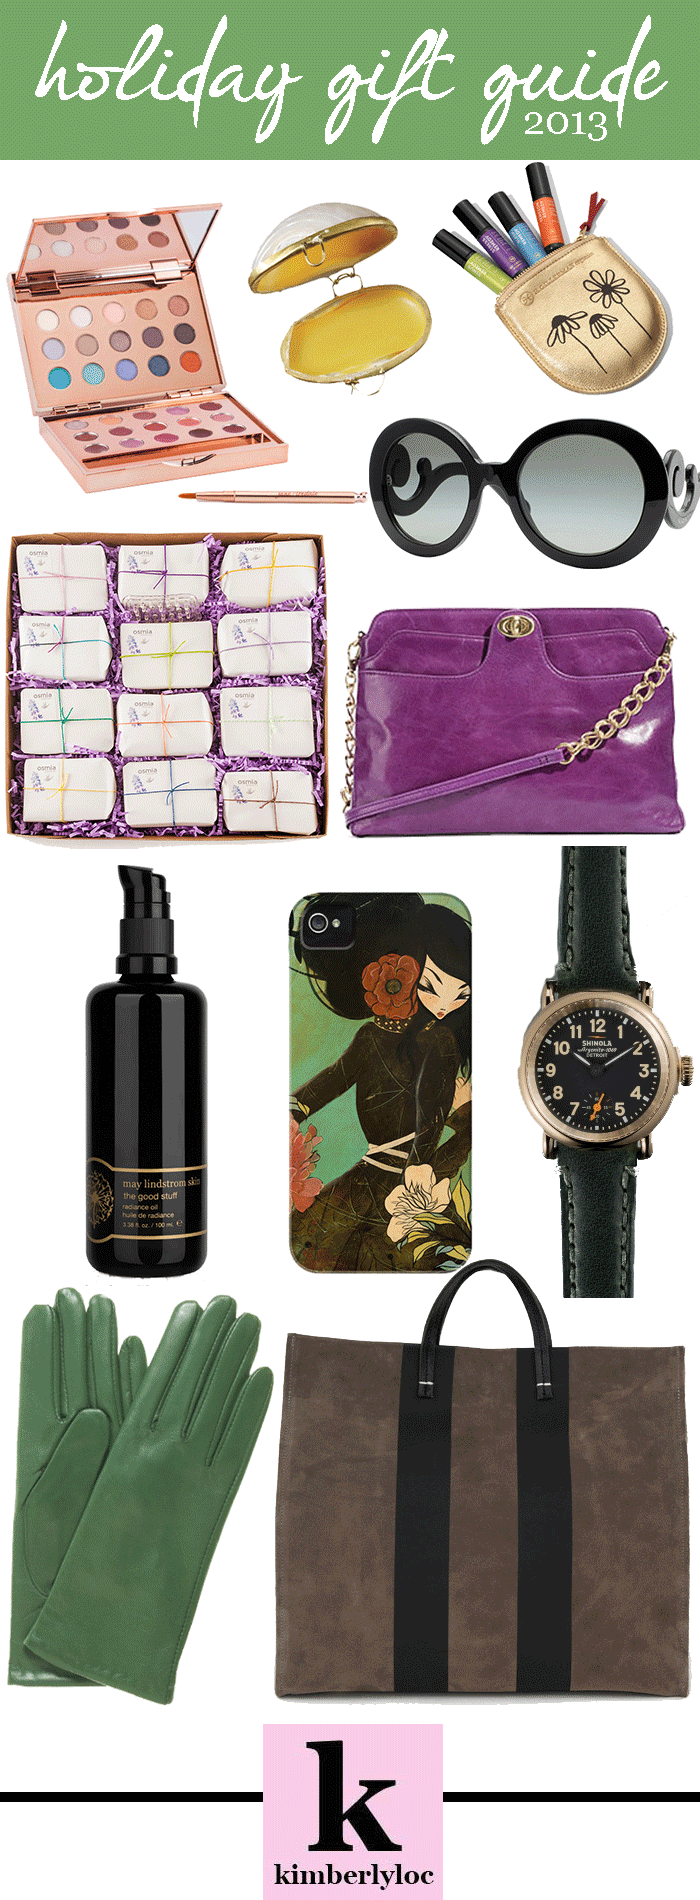 kimberlyloc holiday gift guide 2013